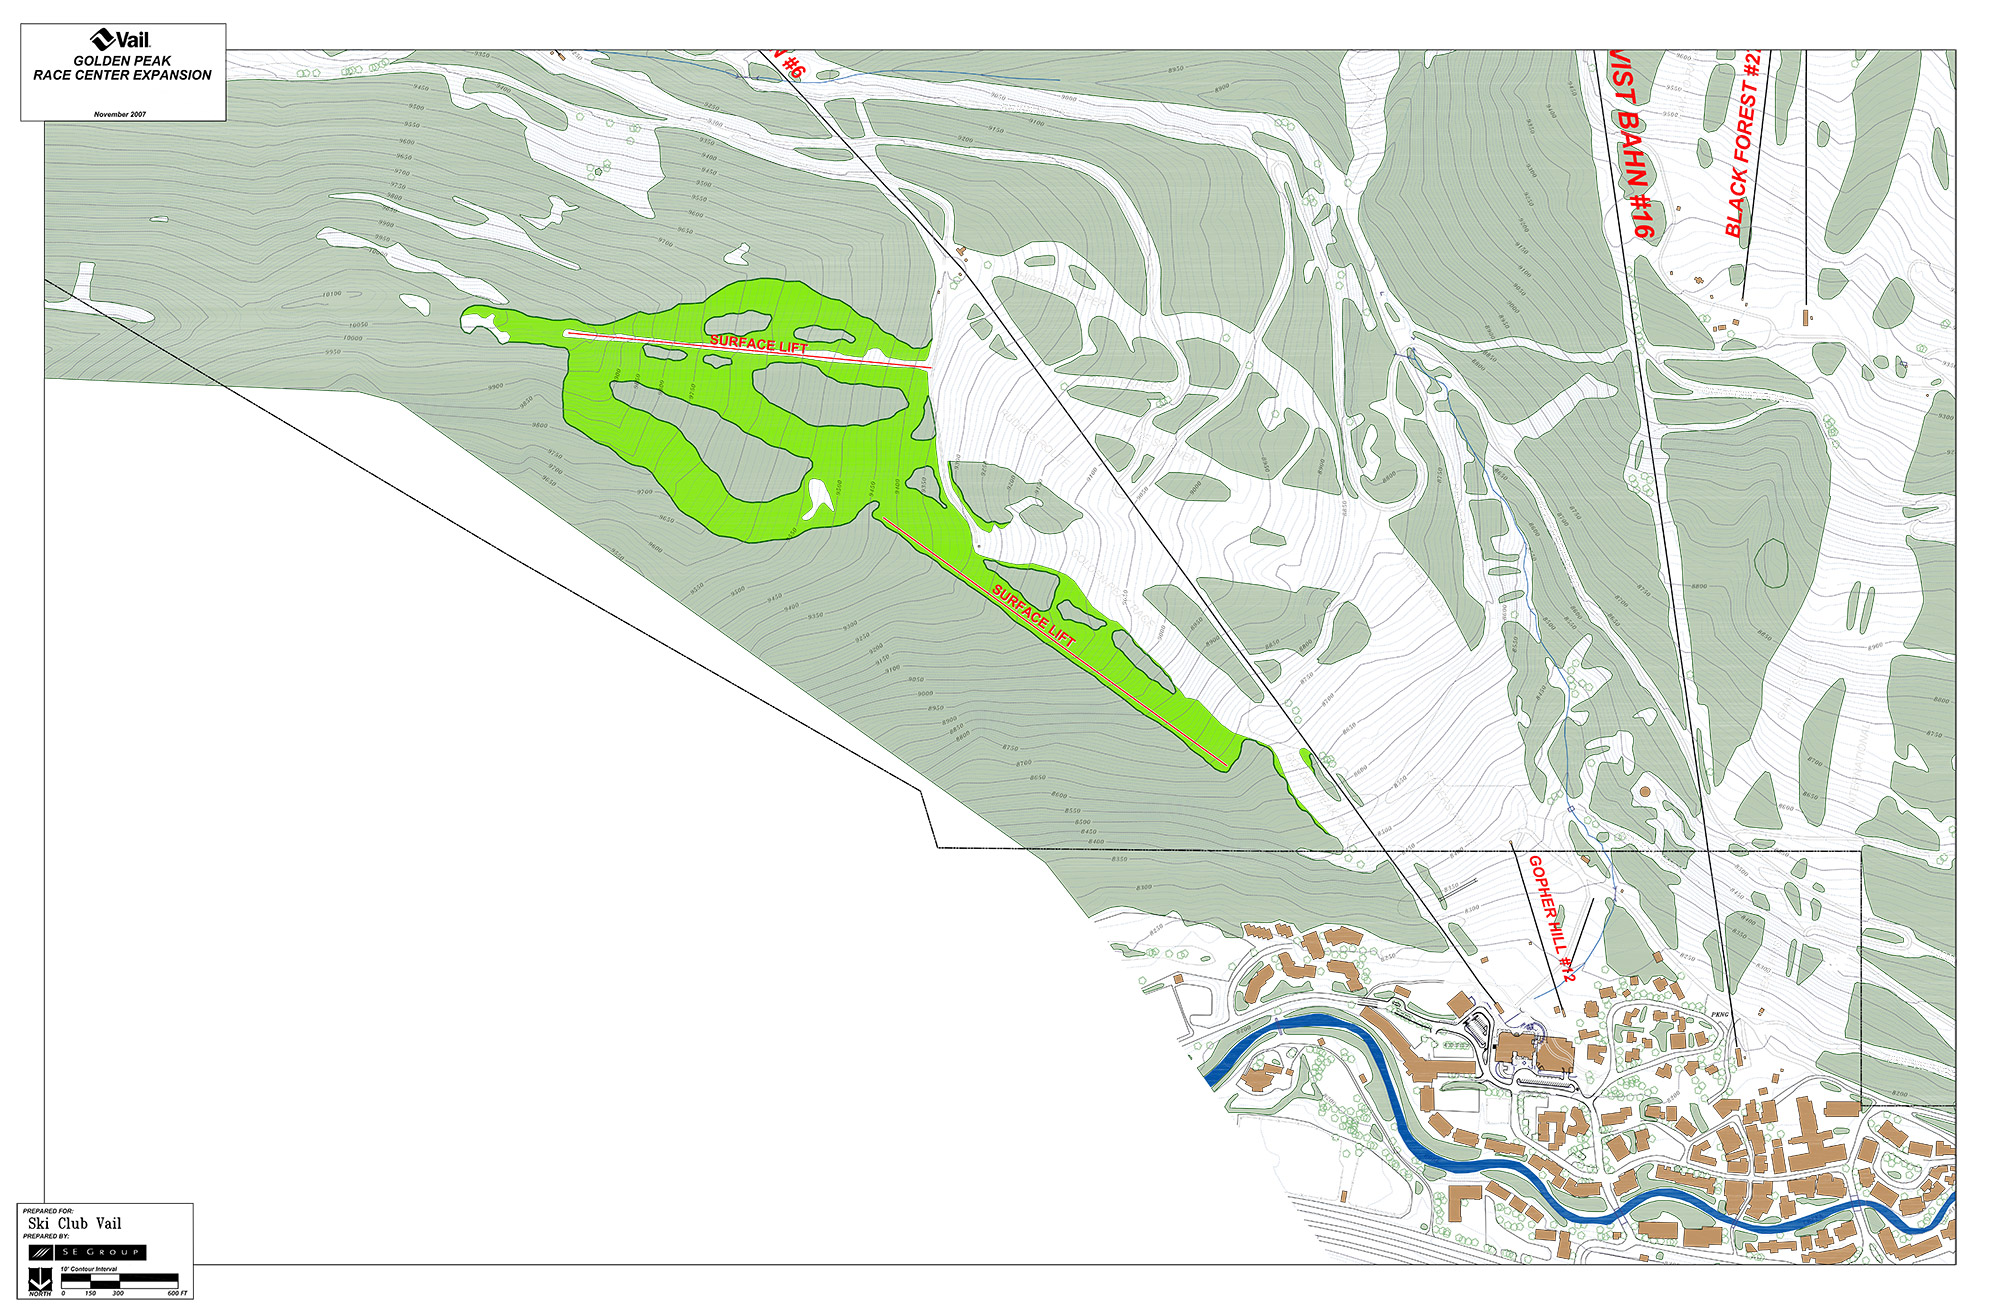 The green area outlines the proposed new trail areas above Golden Peak, which would accommodate speed, tech and freestyle. Two new surface lifts are also shown. Courtesy of SSCV.